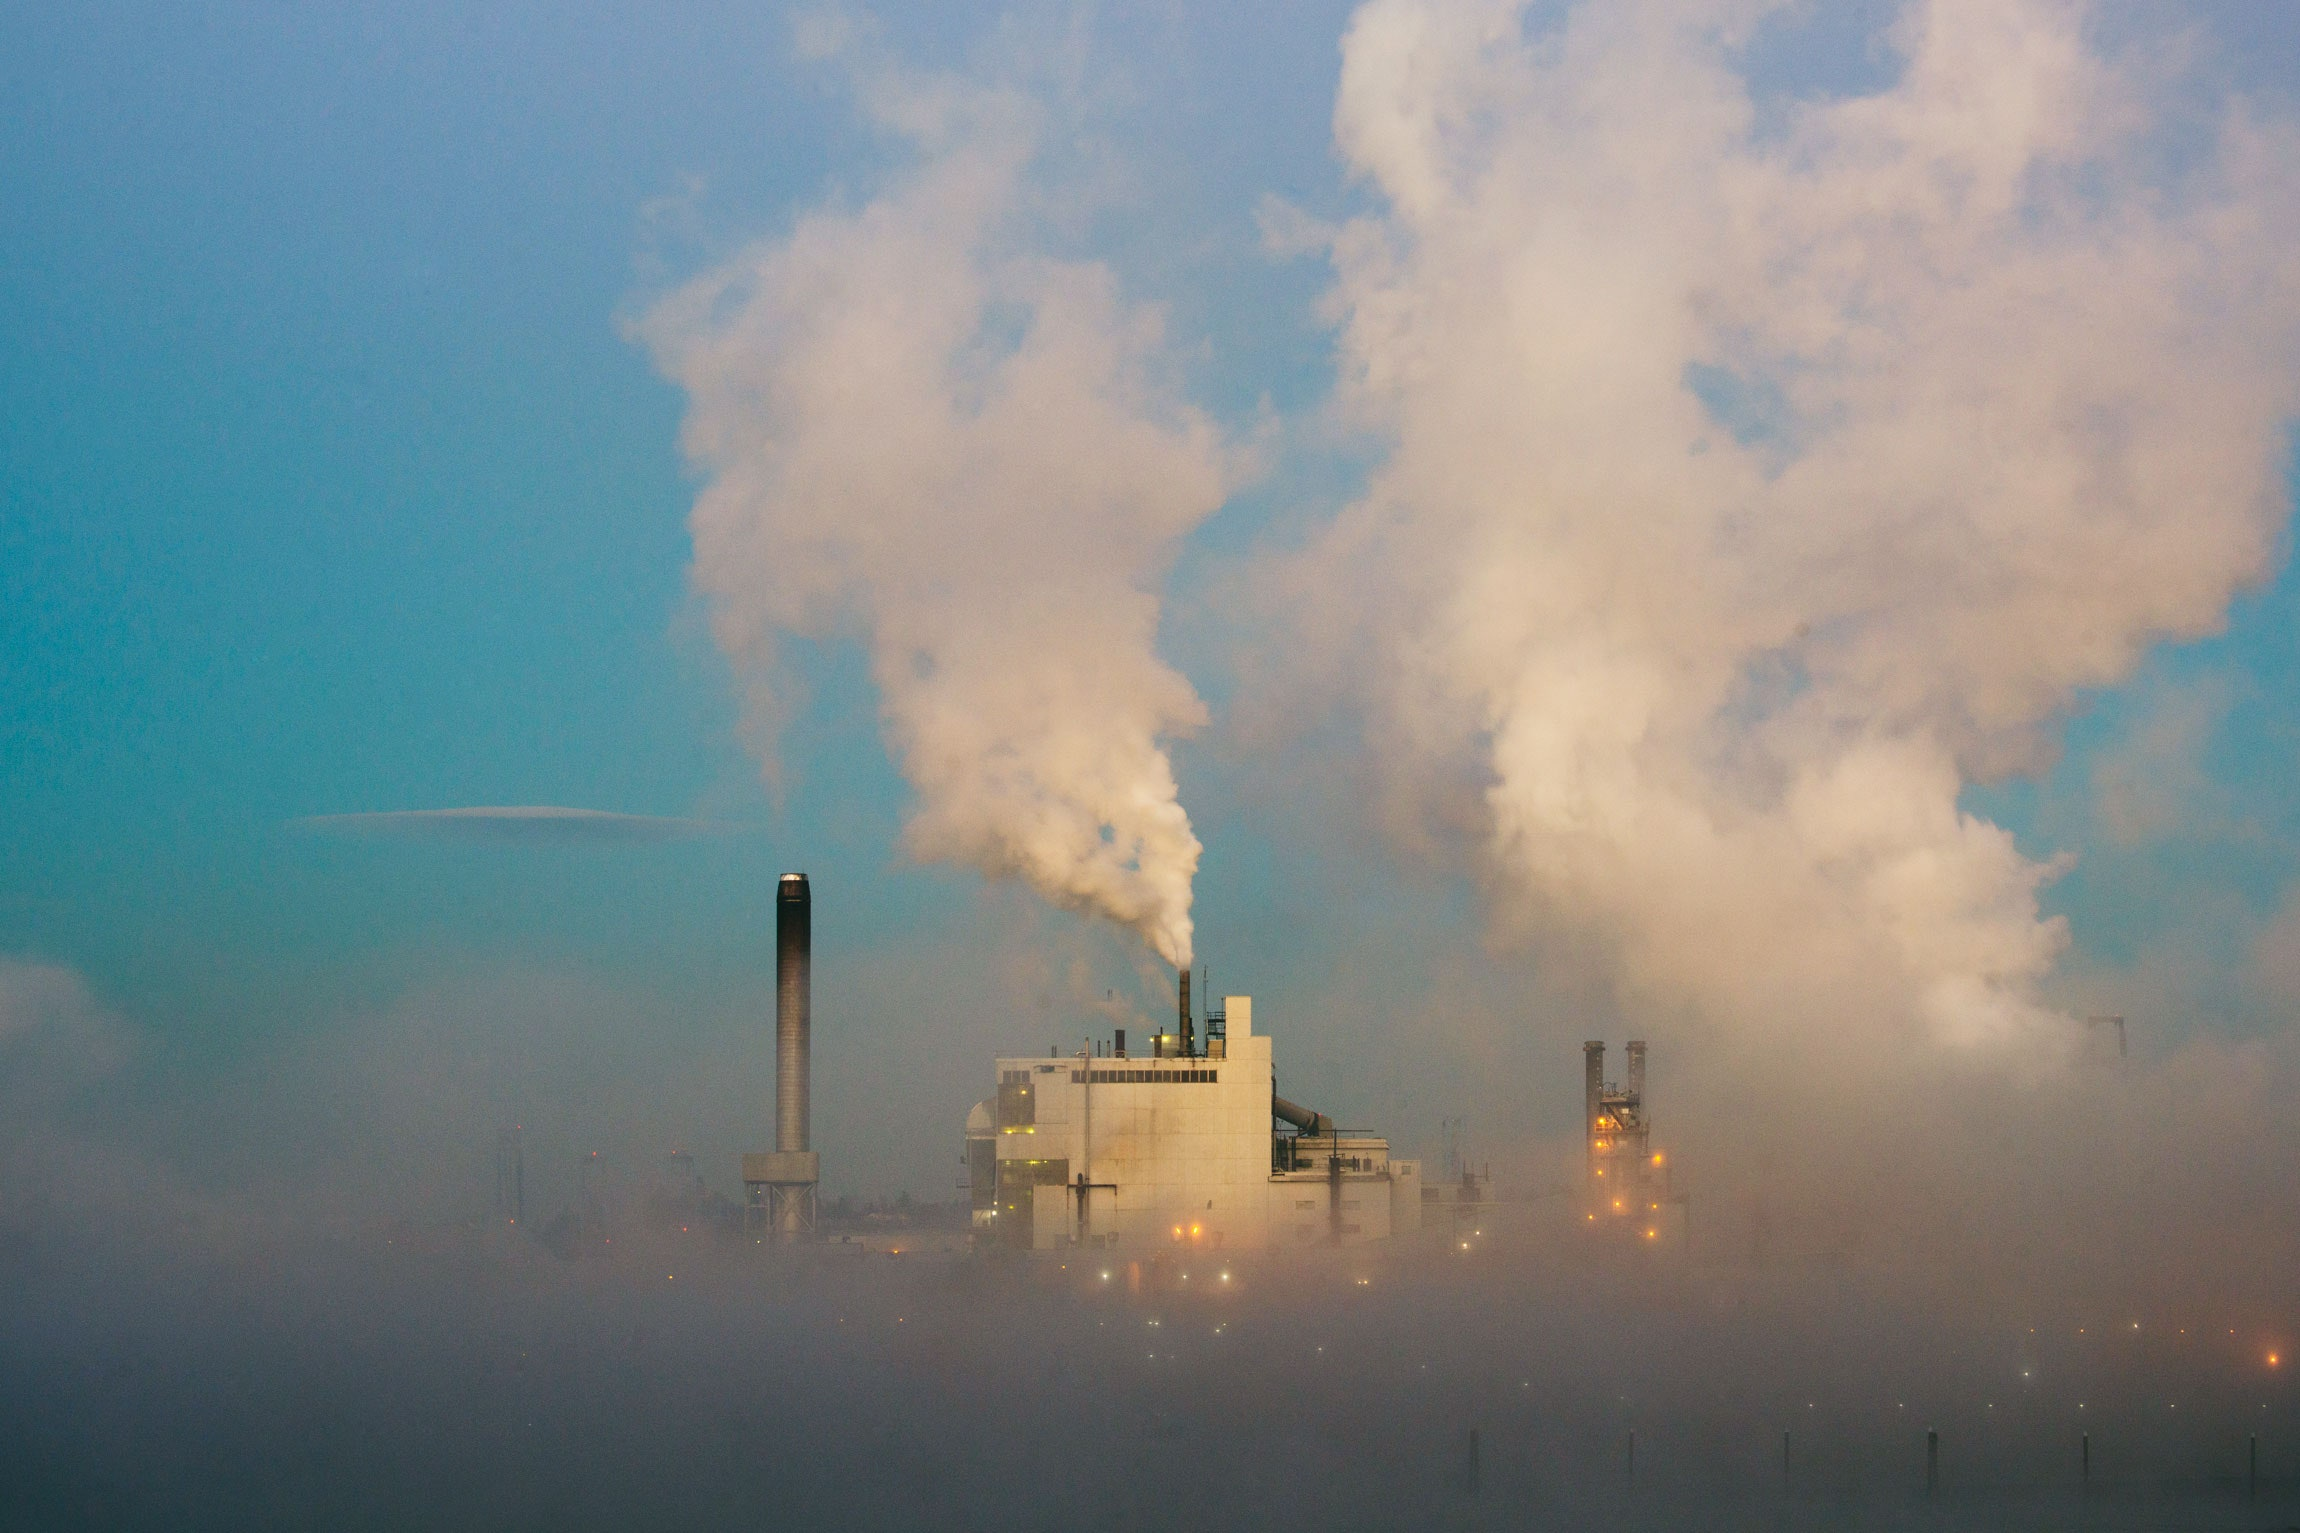 Has Covid-19 helped ease air pollution?